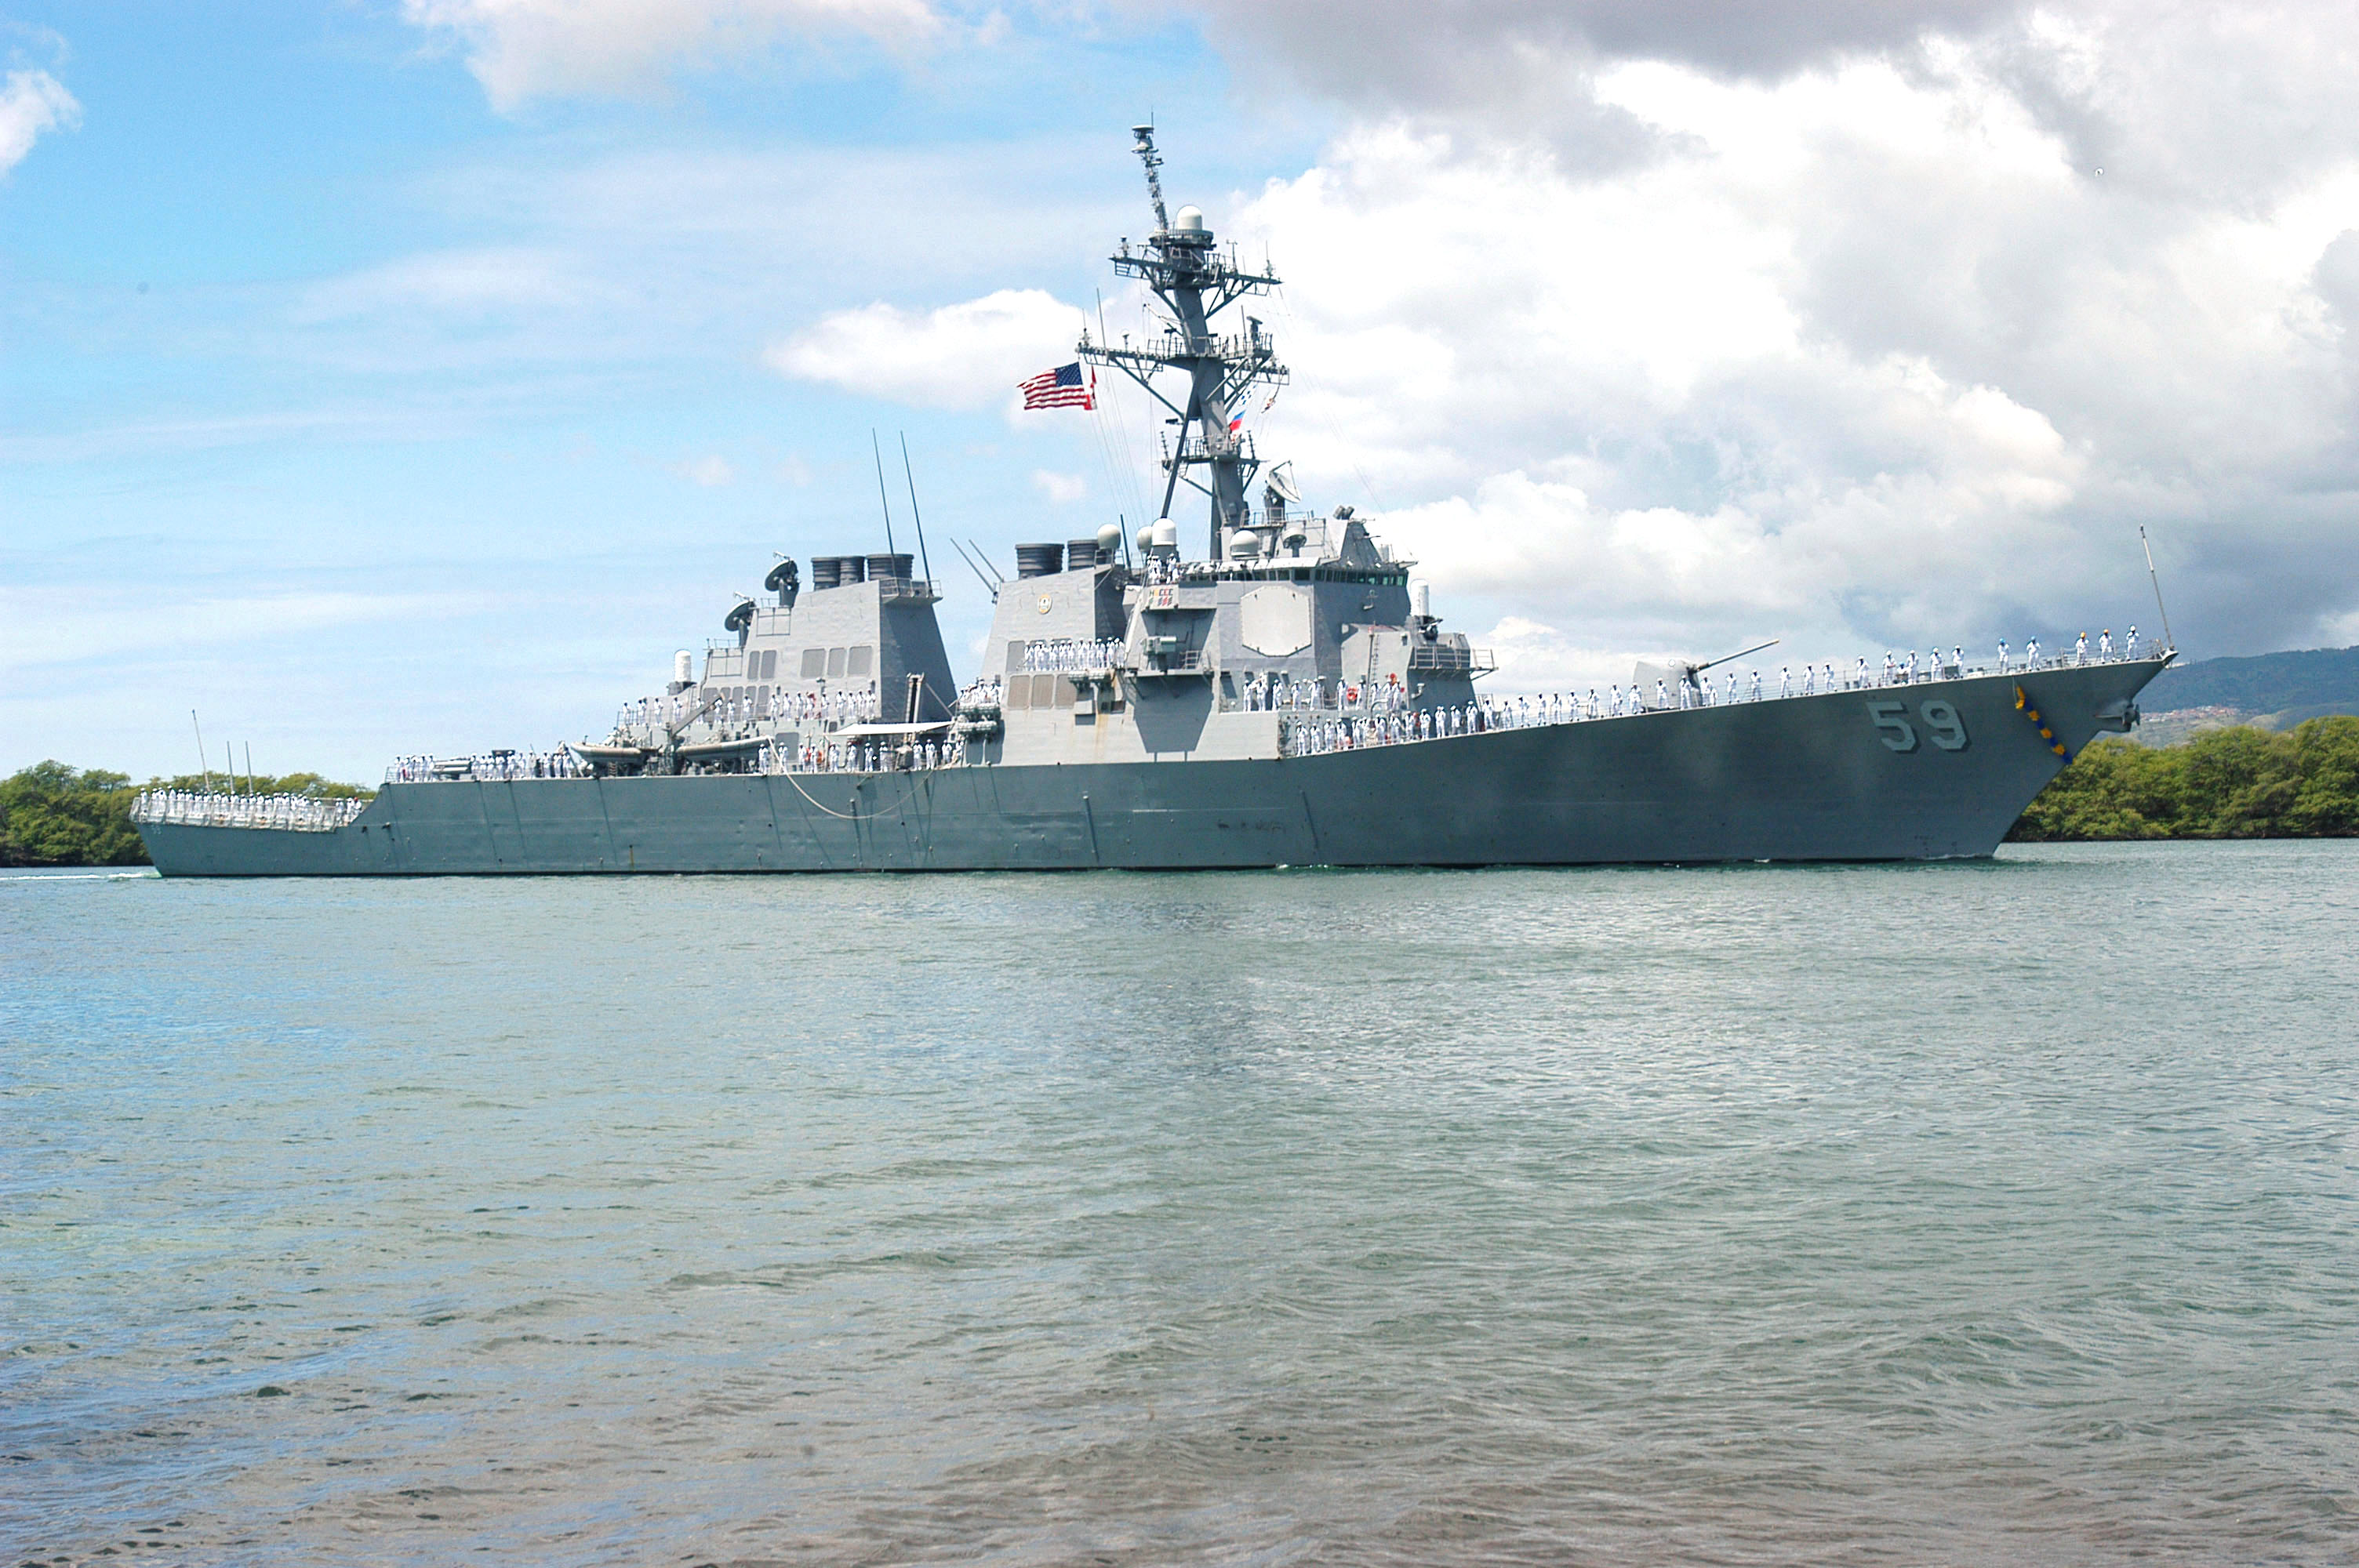 USS Russell off the coast of Hawaii.